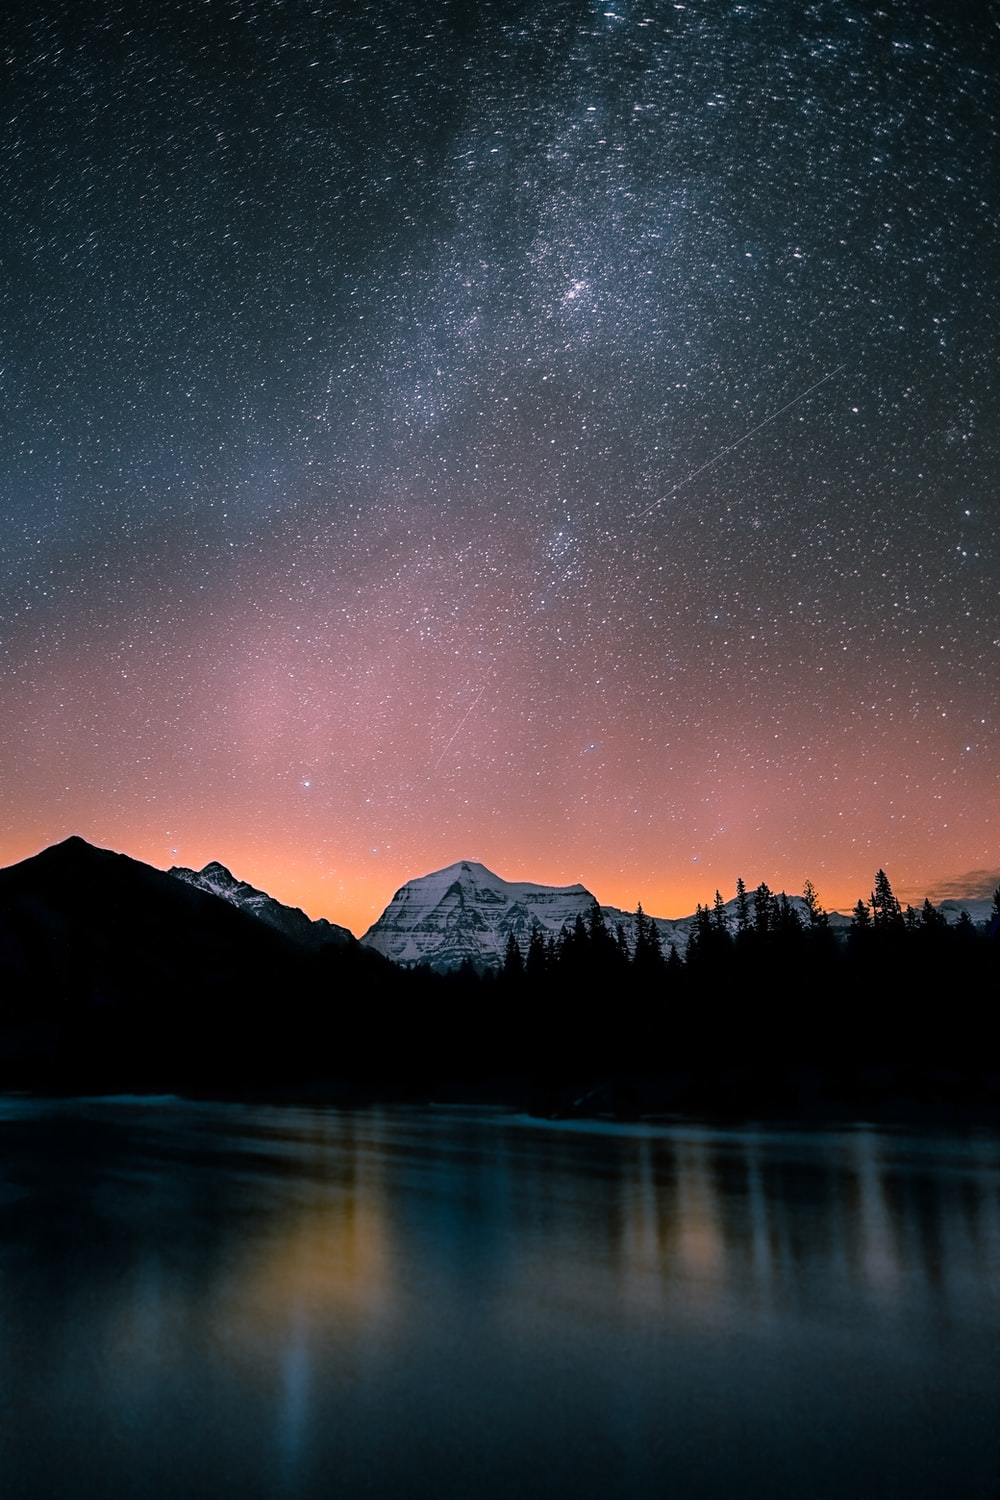 lake surrounded by trees and mountain under milky way